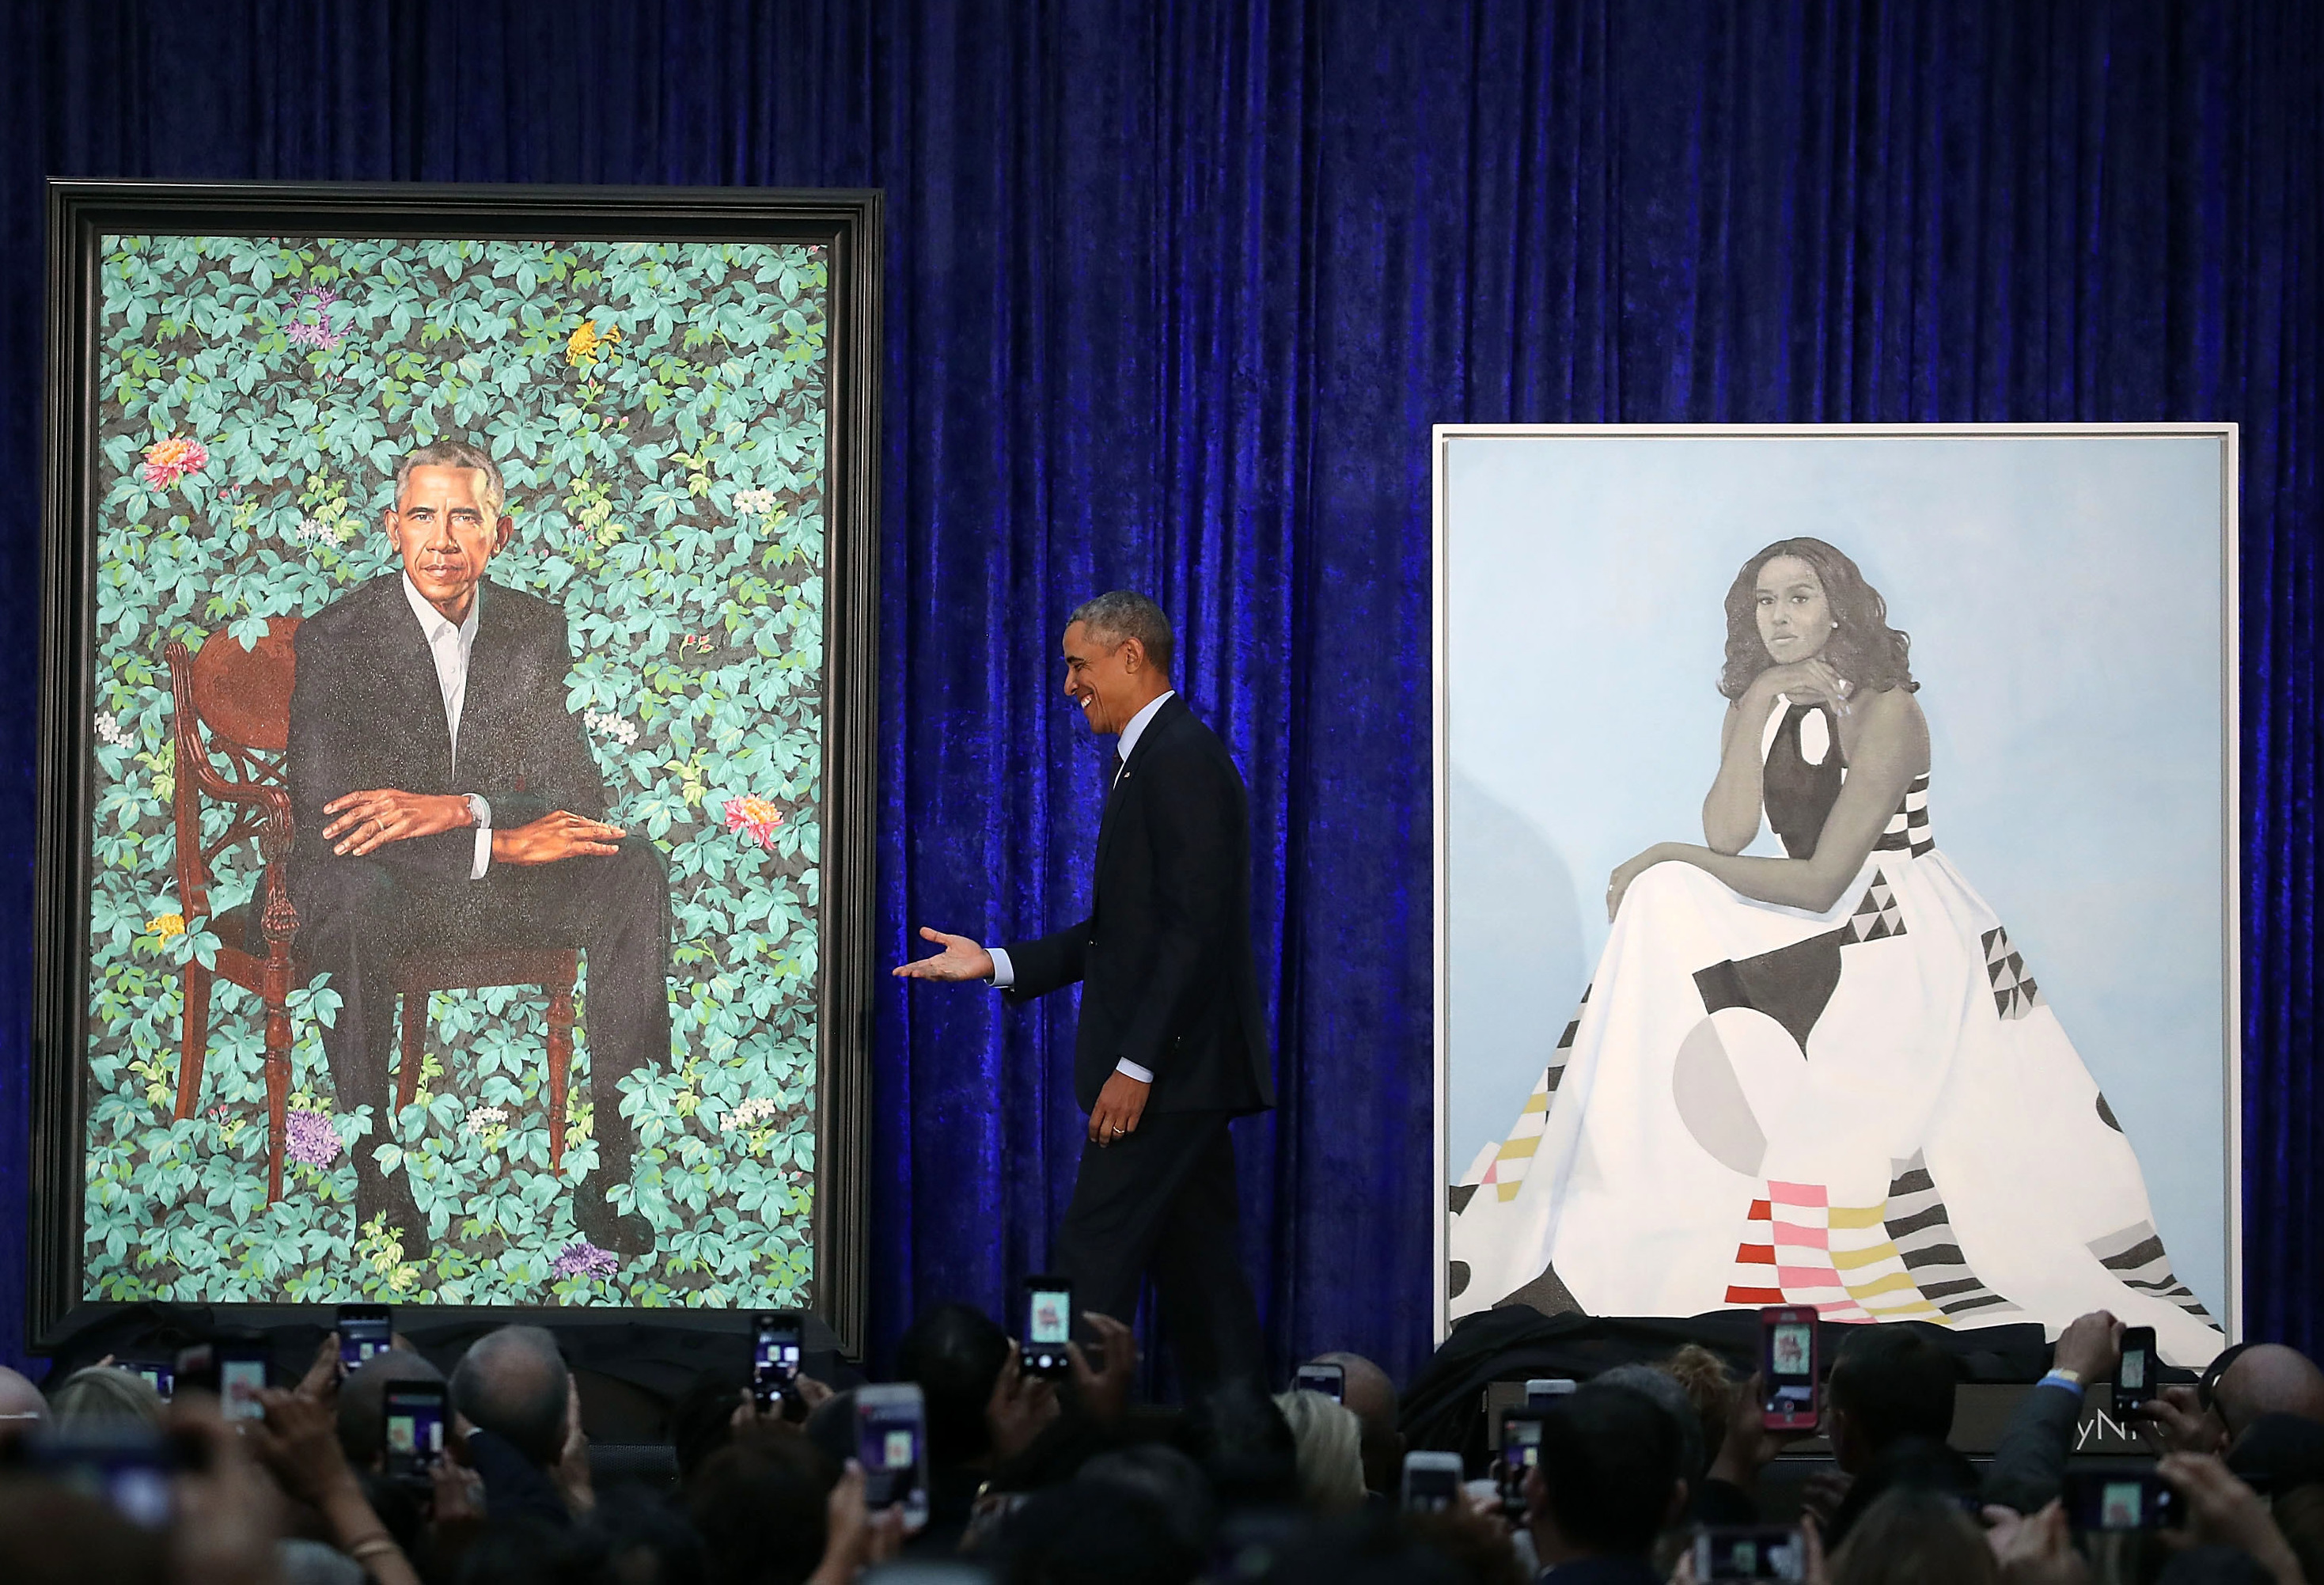 Obama stands between the portraits. His will be permanently installed in the